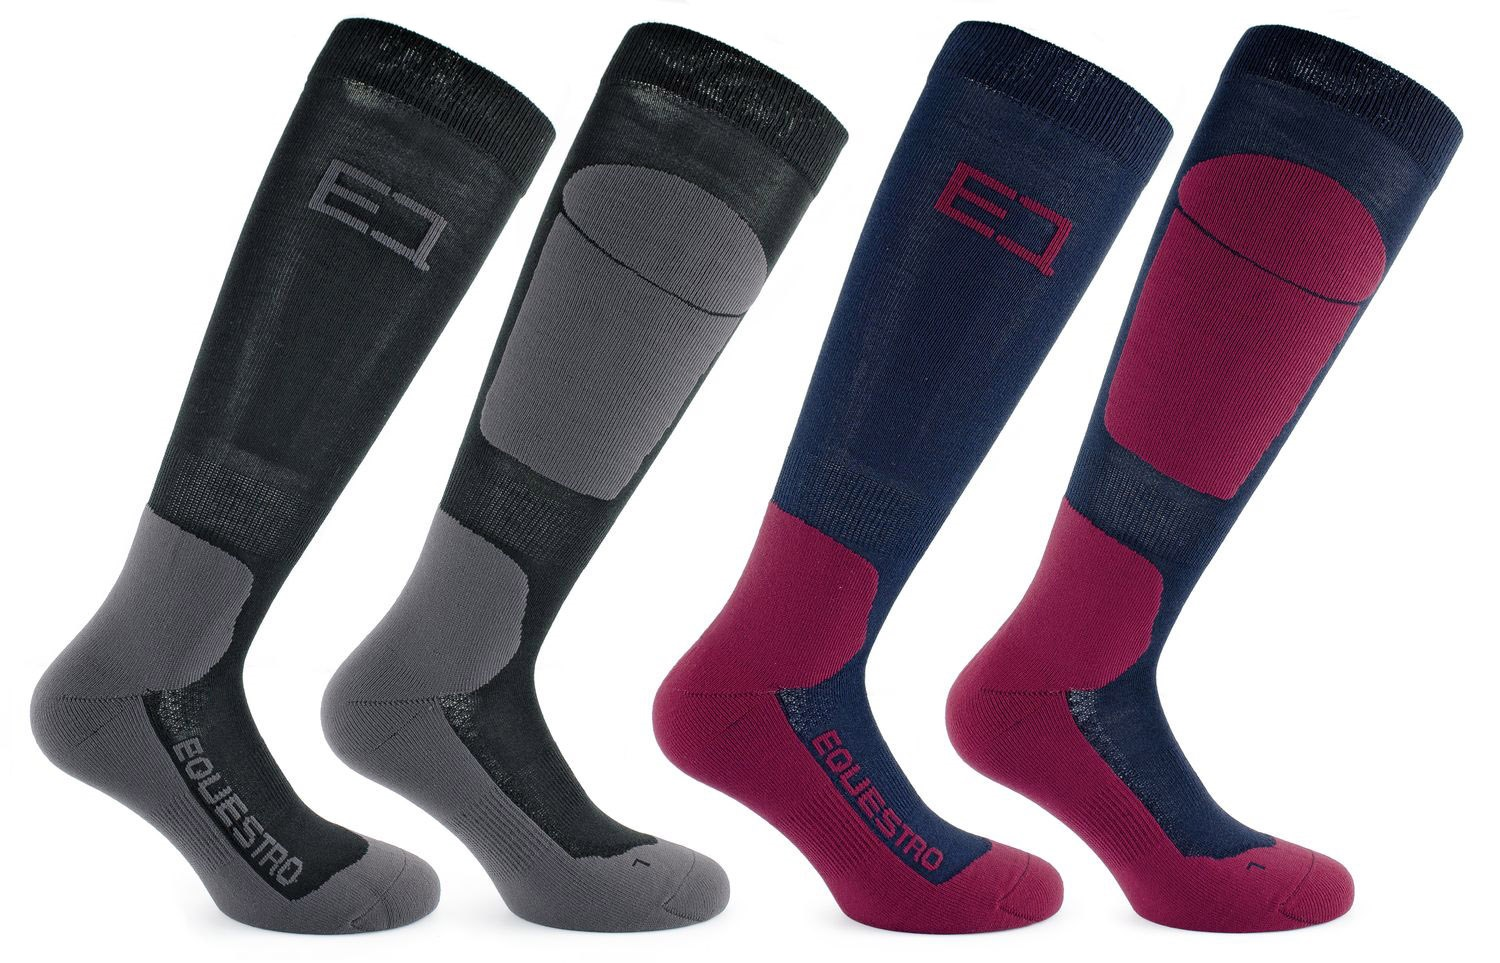 Equestro Advance Long Sock Svart/Grå S(35-38)